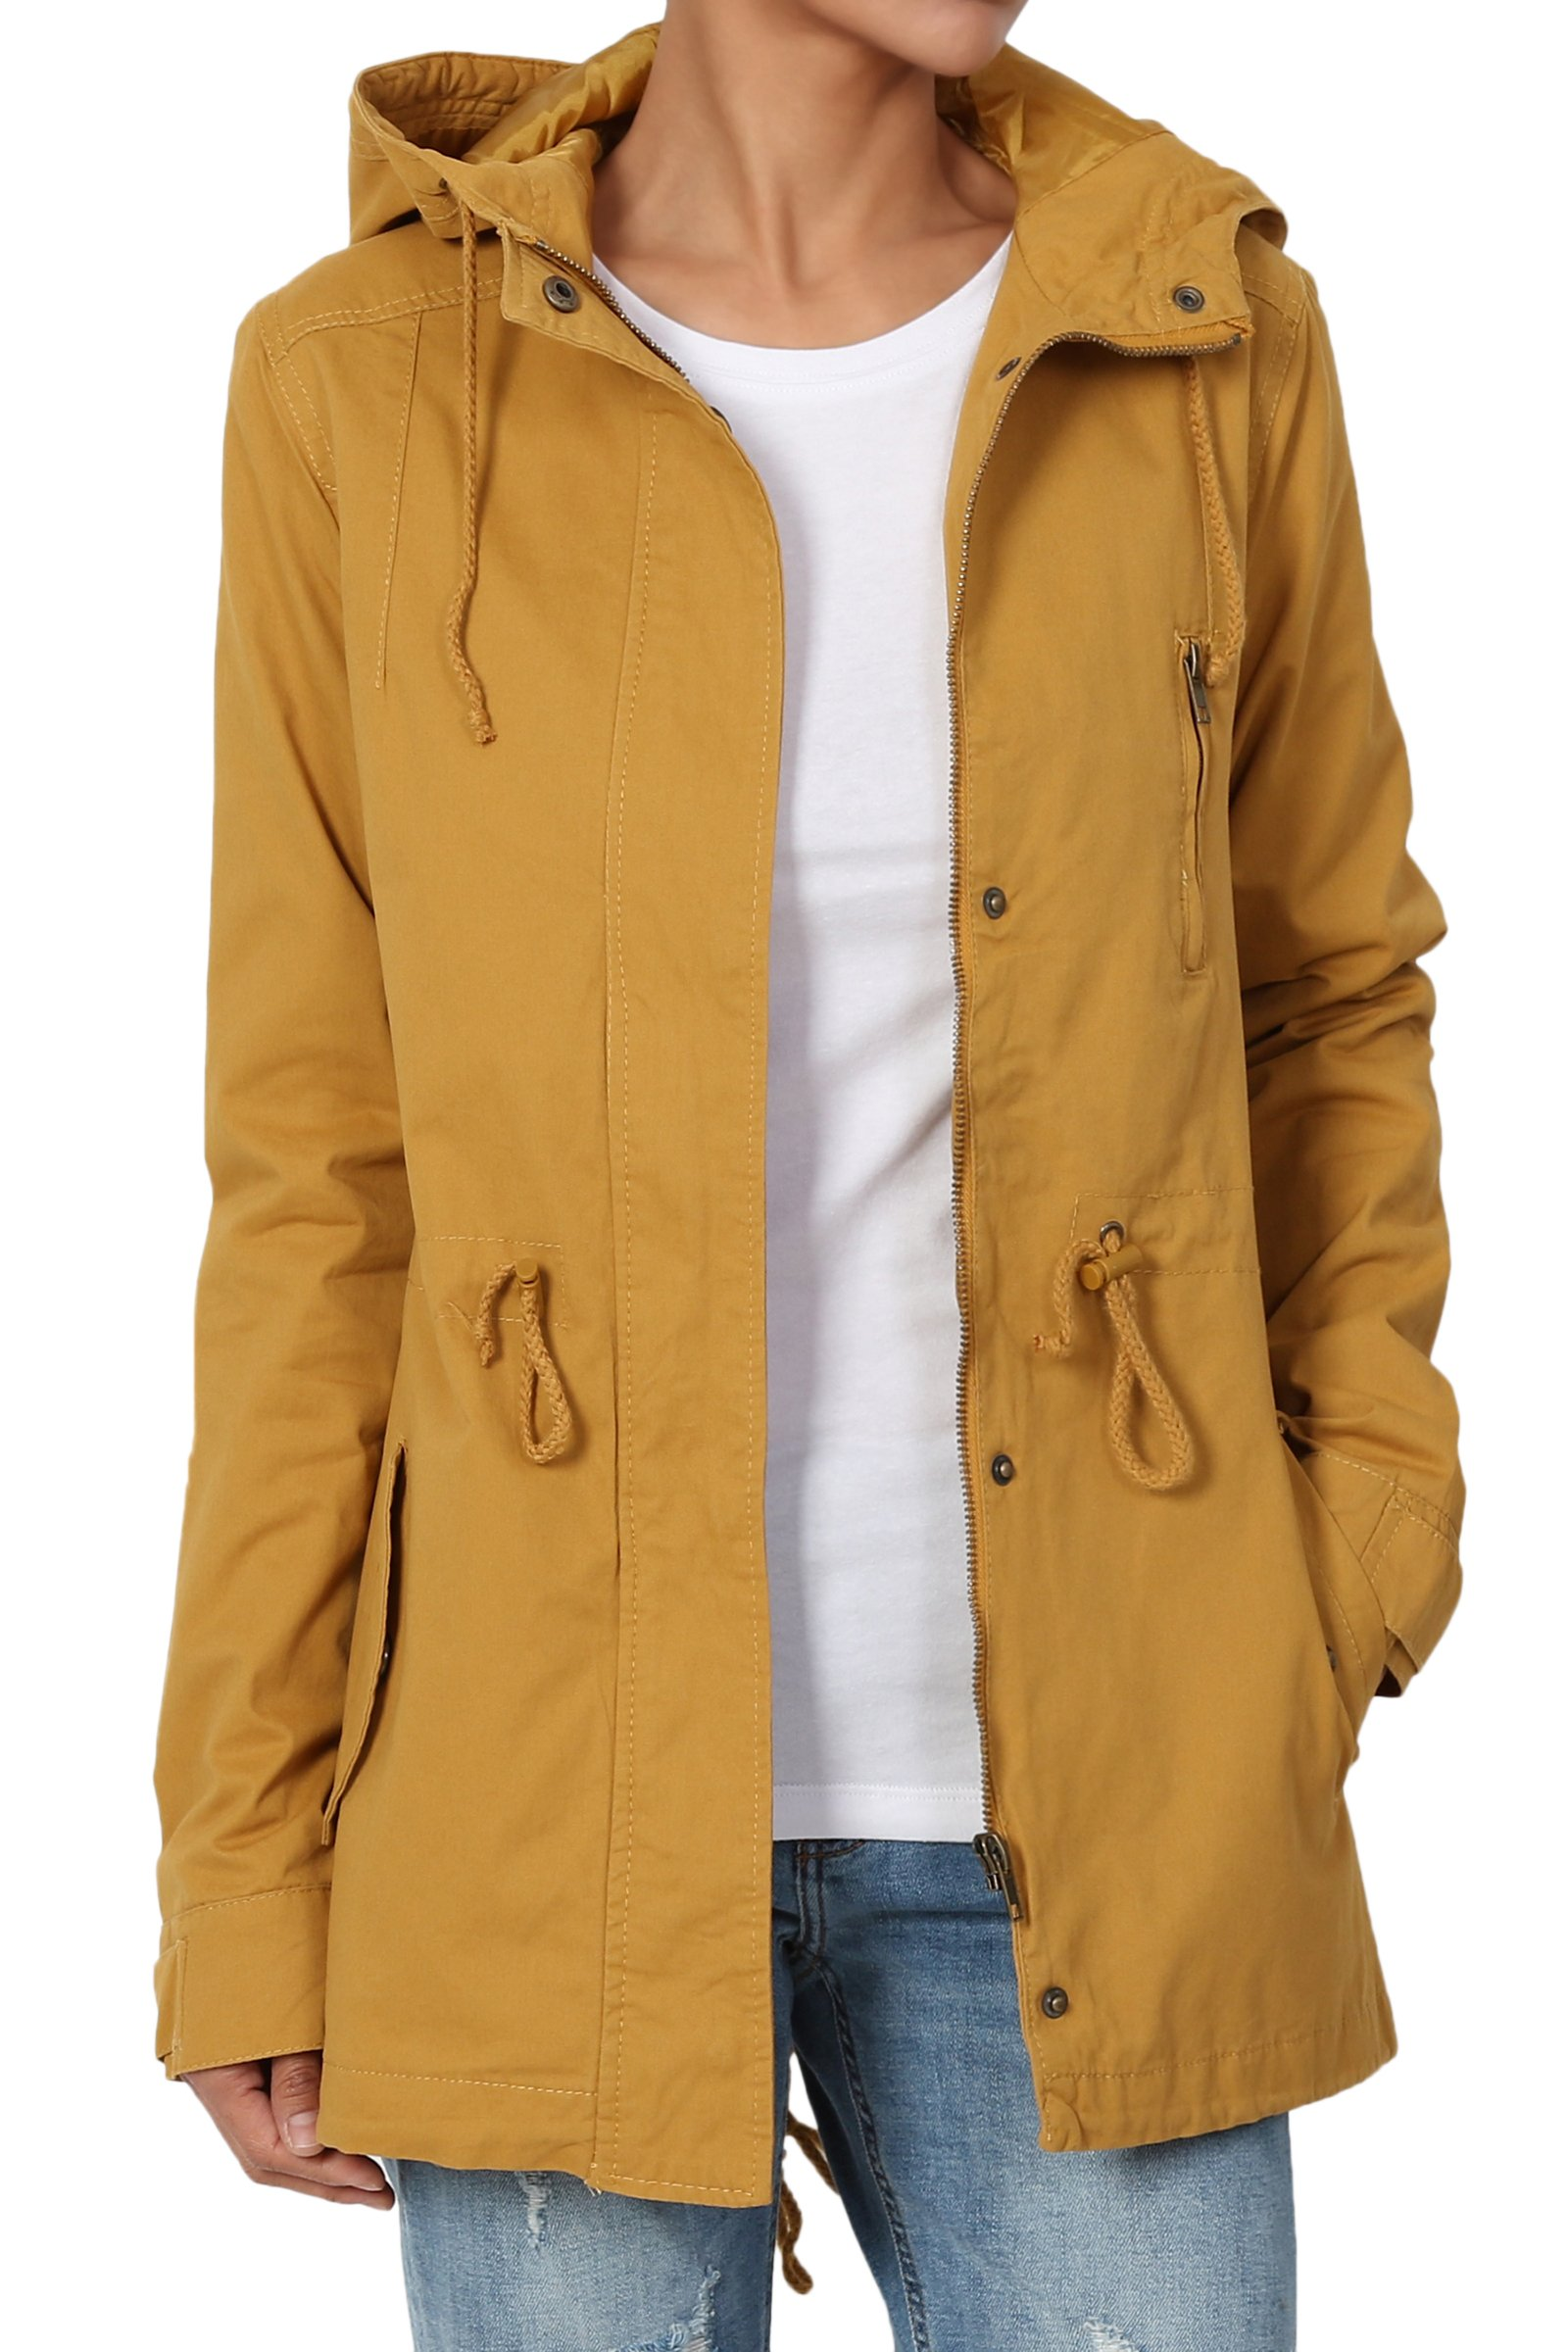 TheMogan Junior's Washed Twill Hooded Utility Anorak Jacket Mustard M by TheMogan (Image #1)